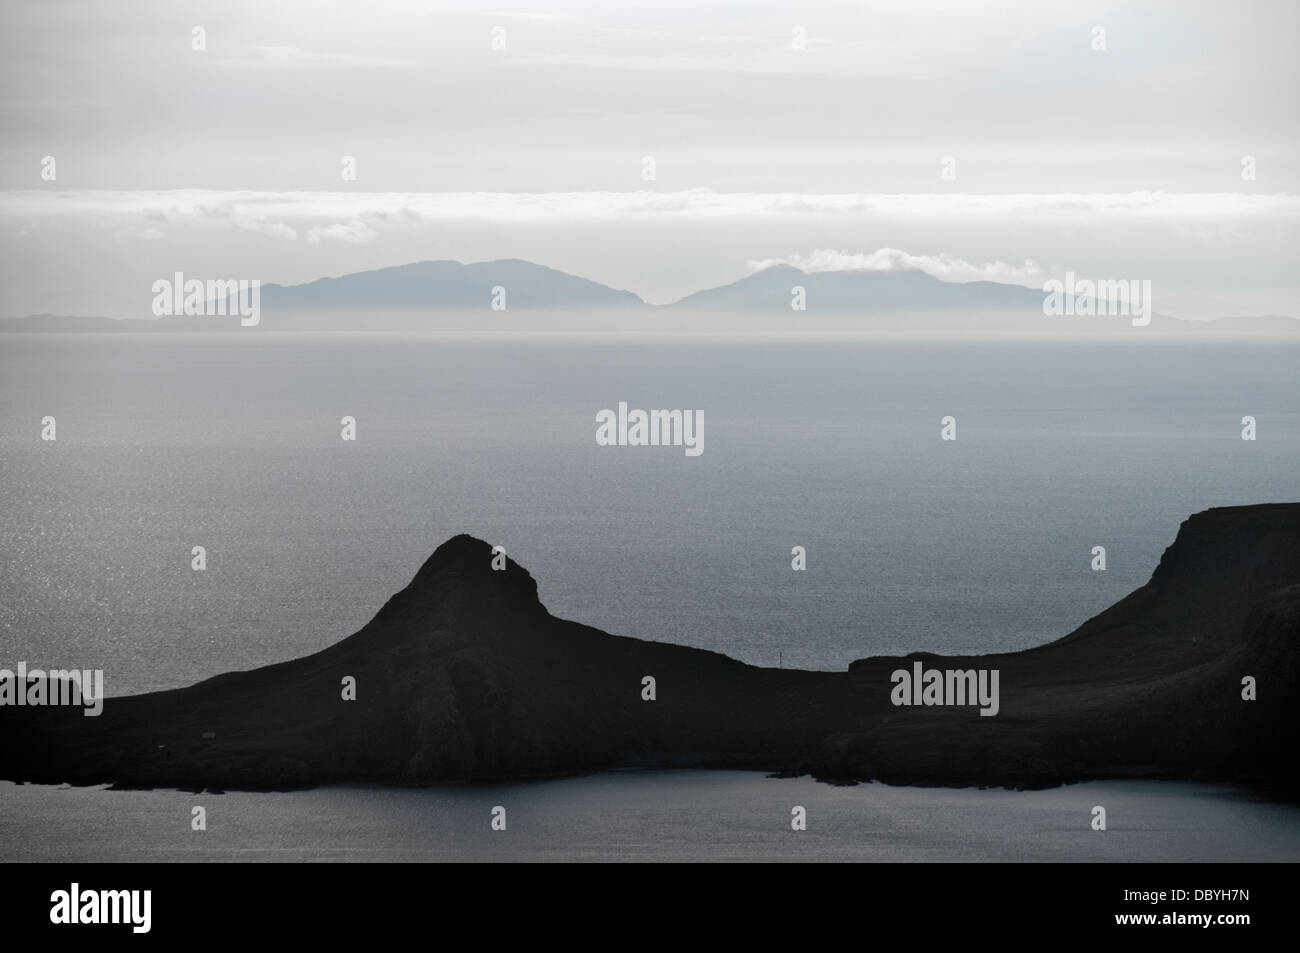 The Western Isles over the waters of the Minch with Neiss Point, Duirinish, on the Isle of Skye in the foreground. Stock Photo